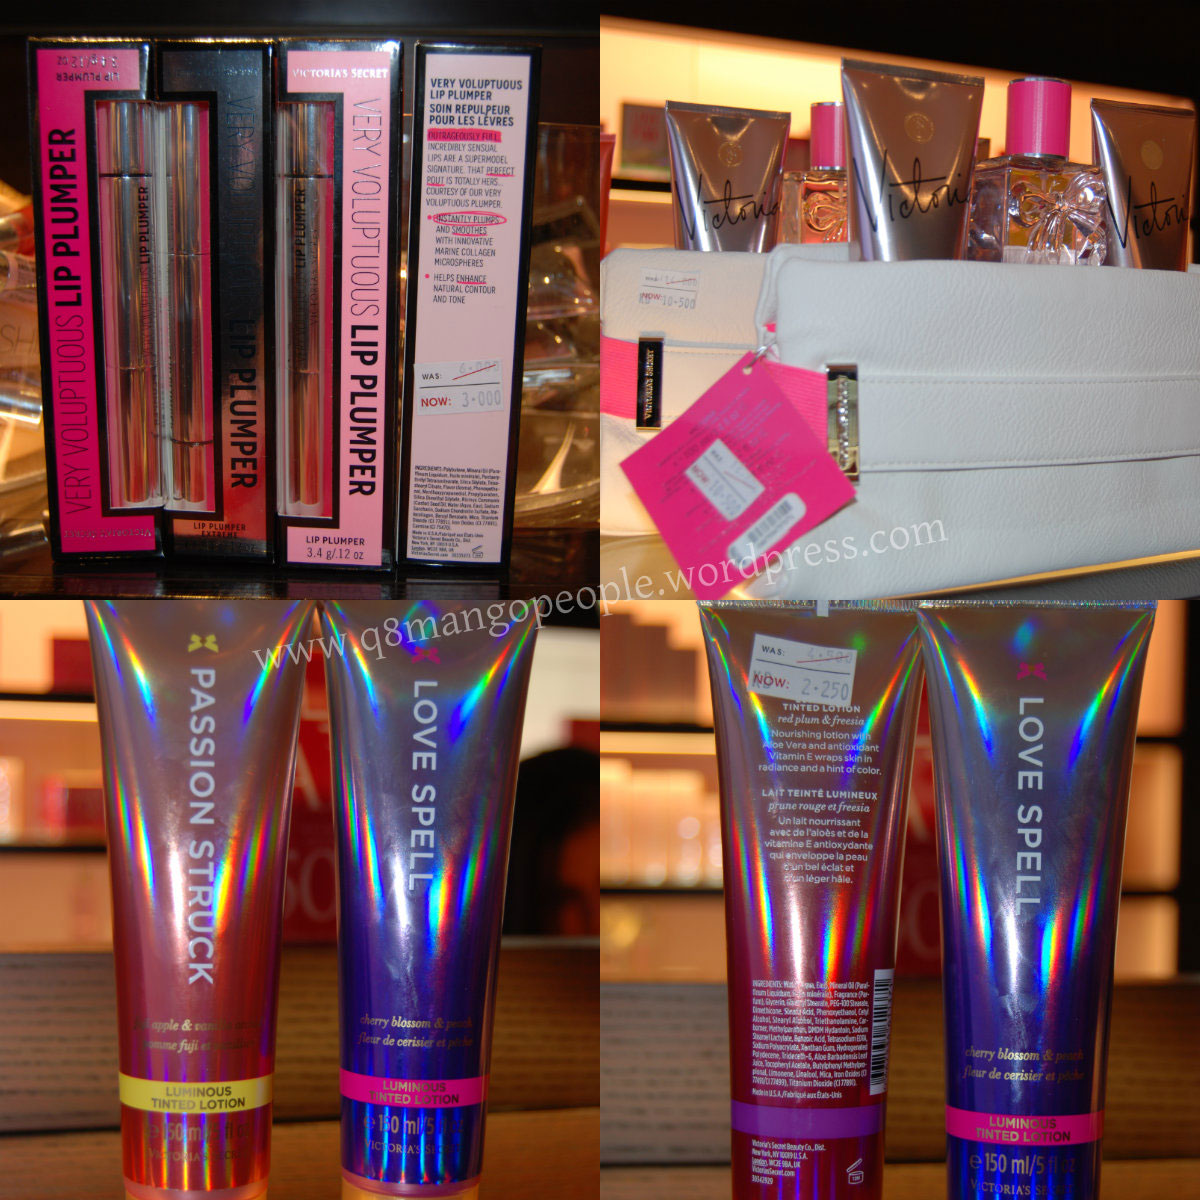 f6f235c279a07 Victoria Secret Avenues Mall Kuwait | Q8 Mango People